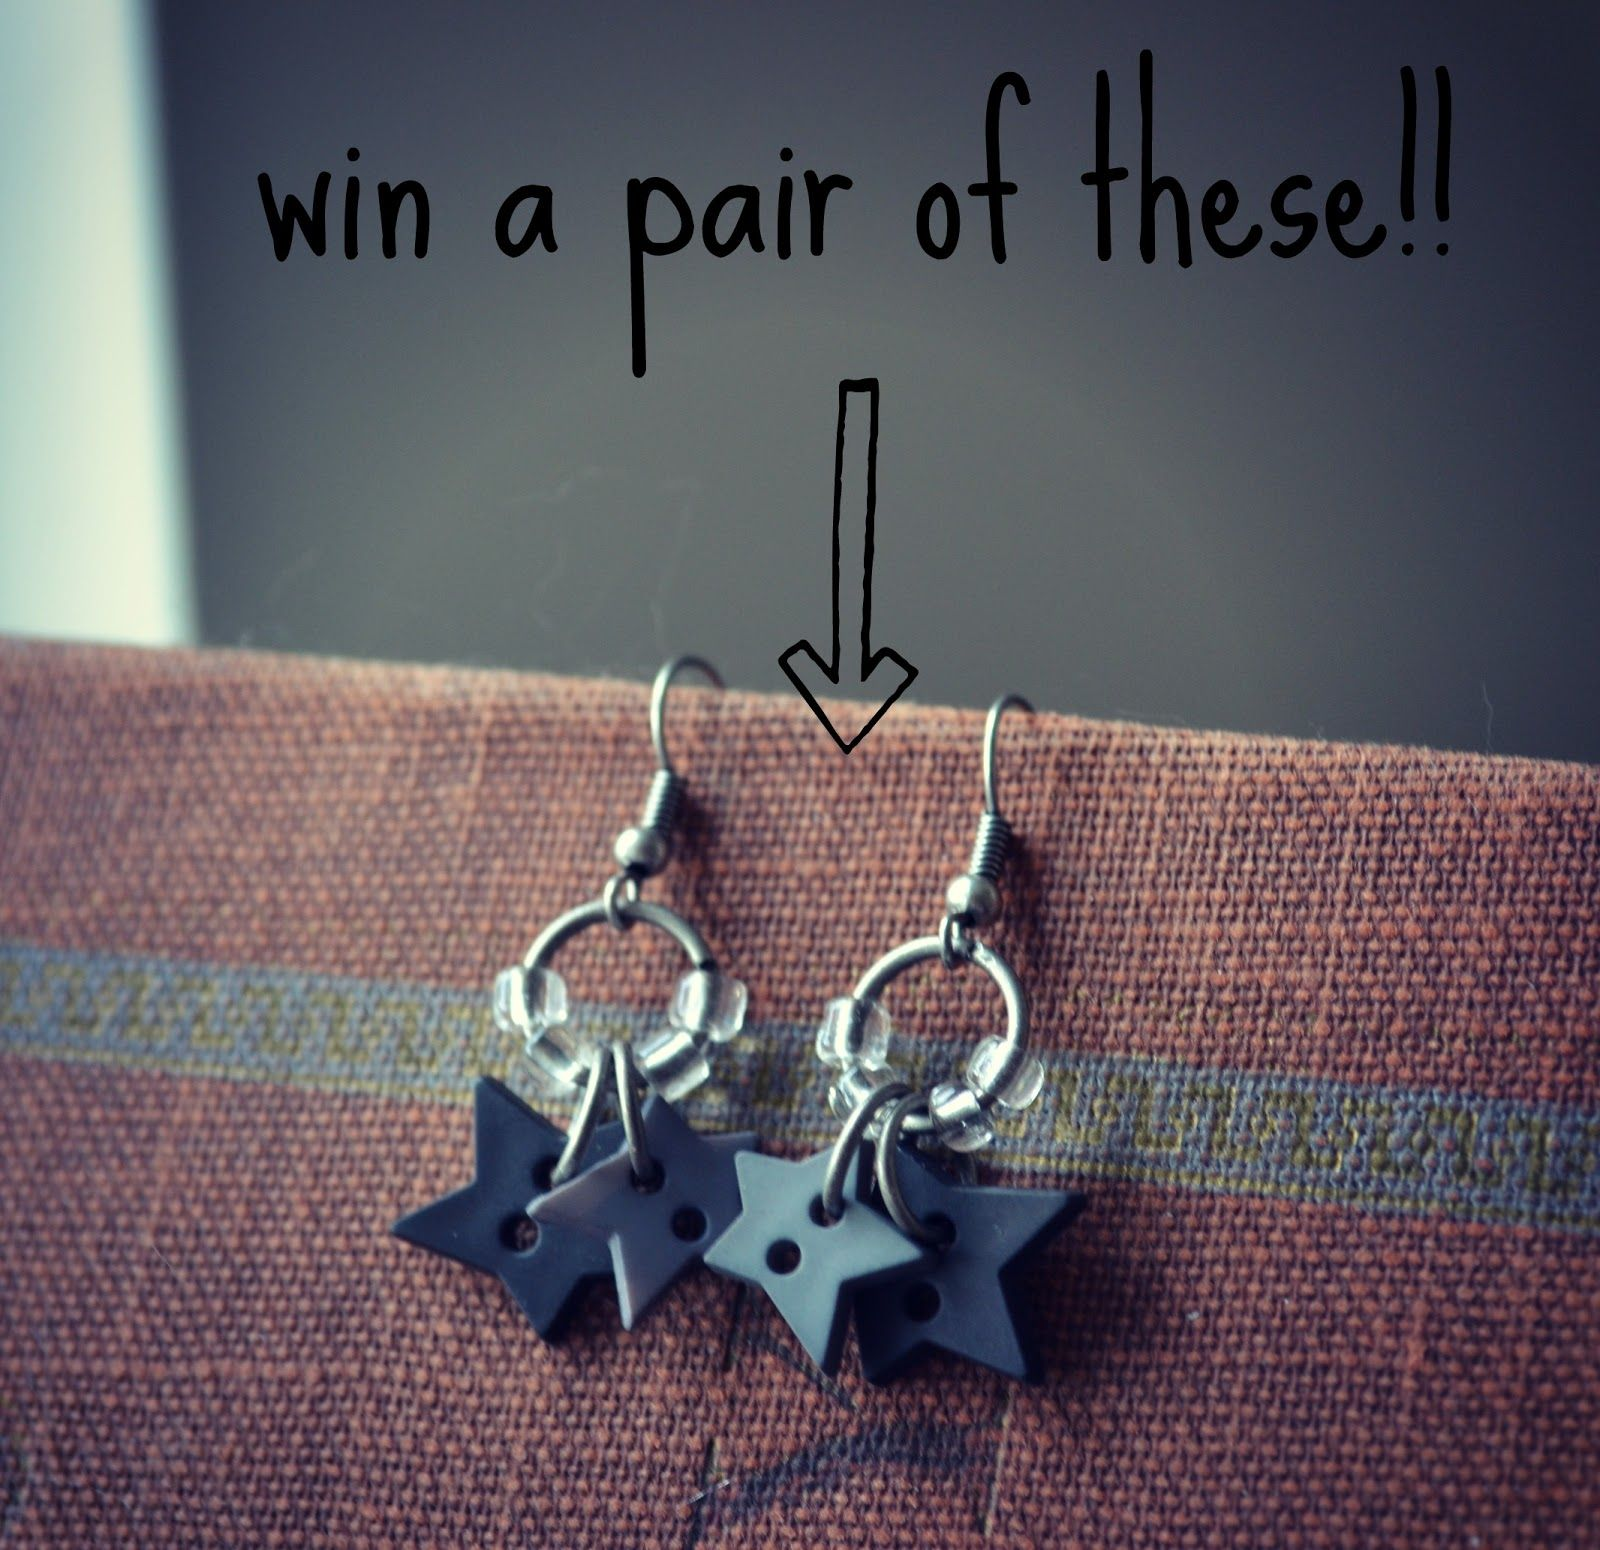 Win a pair of these earrings!